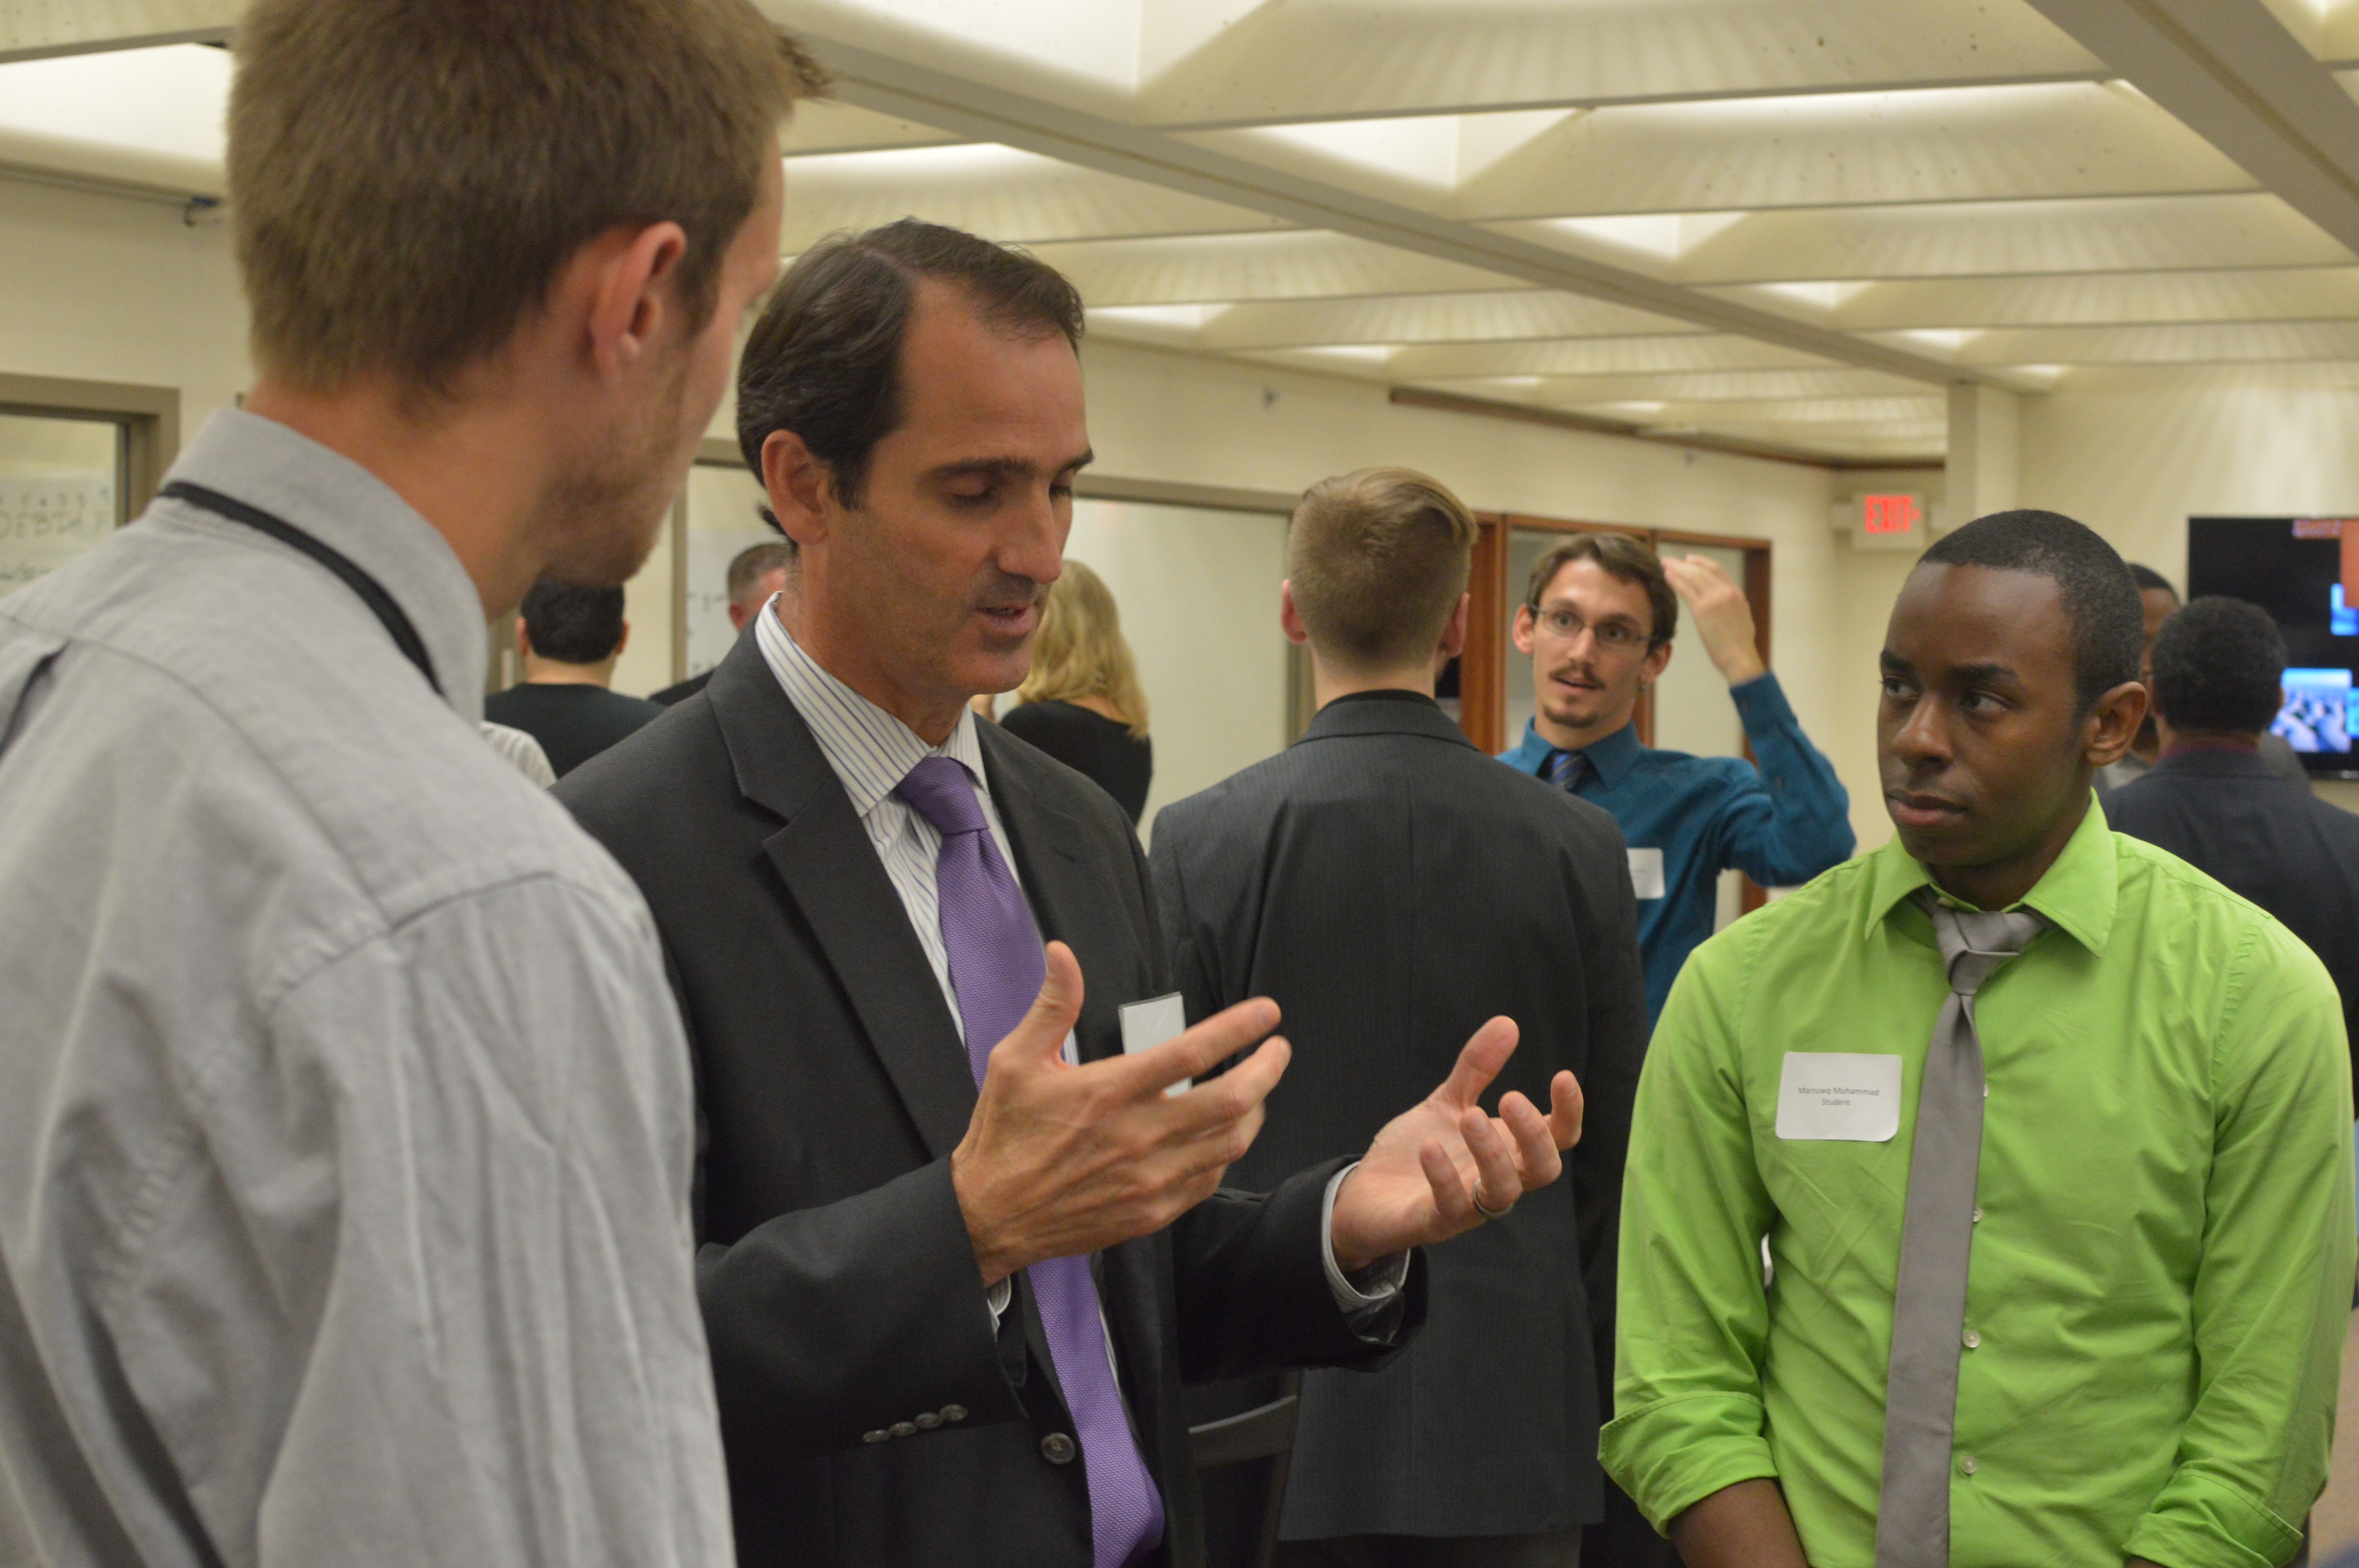 Students meeting with employers